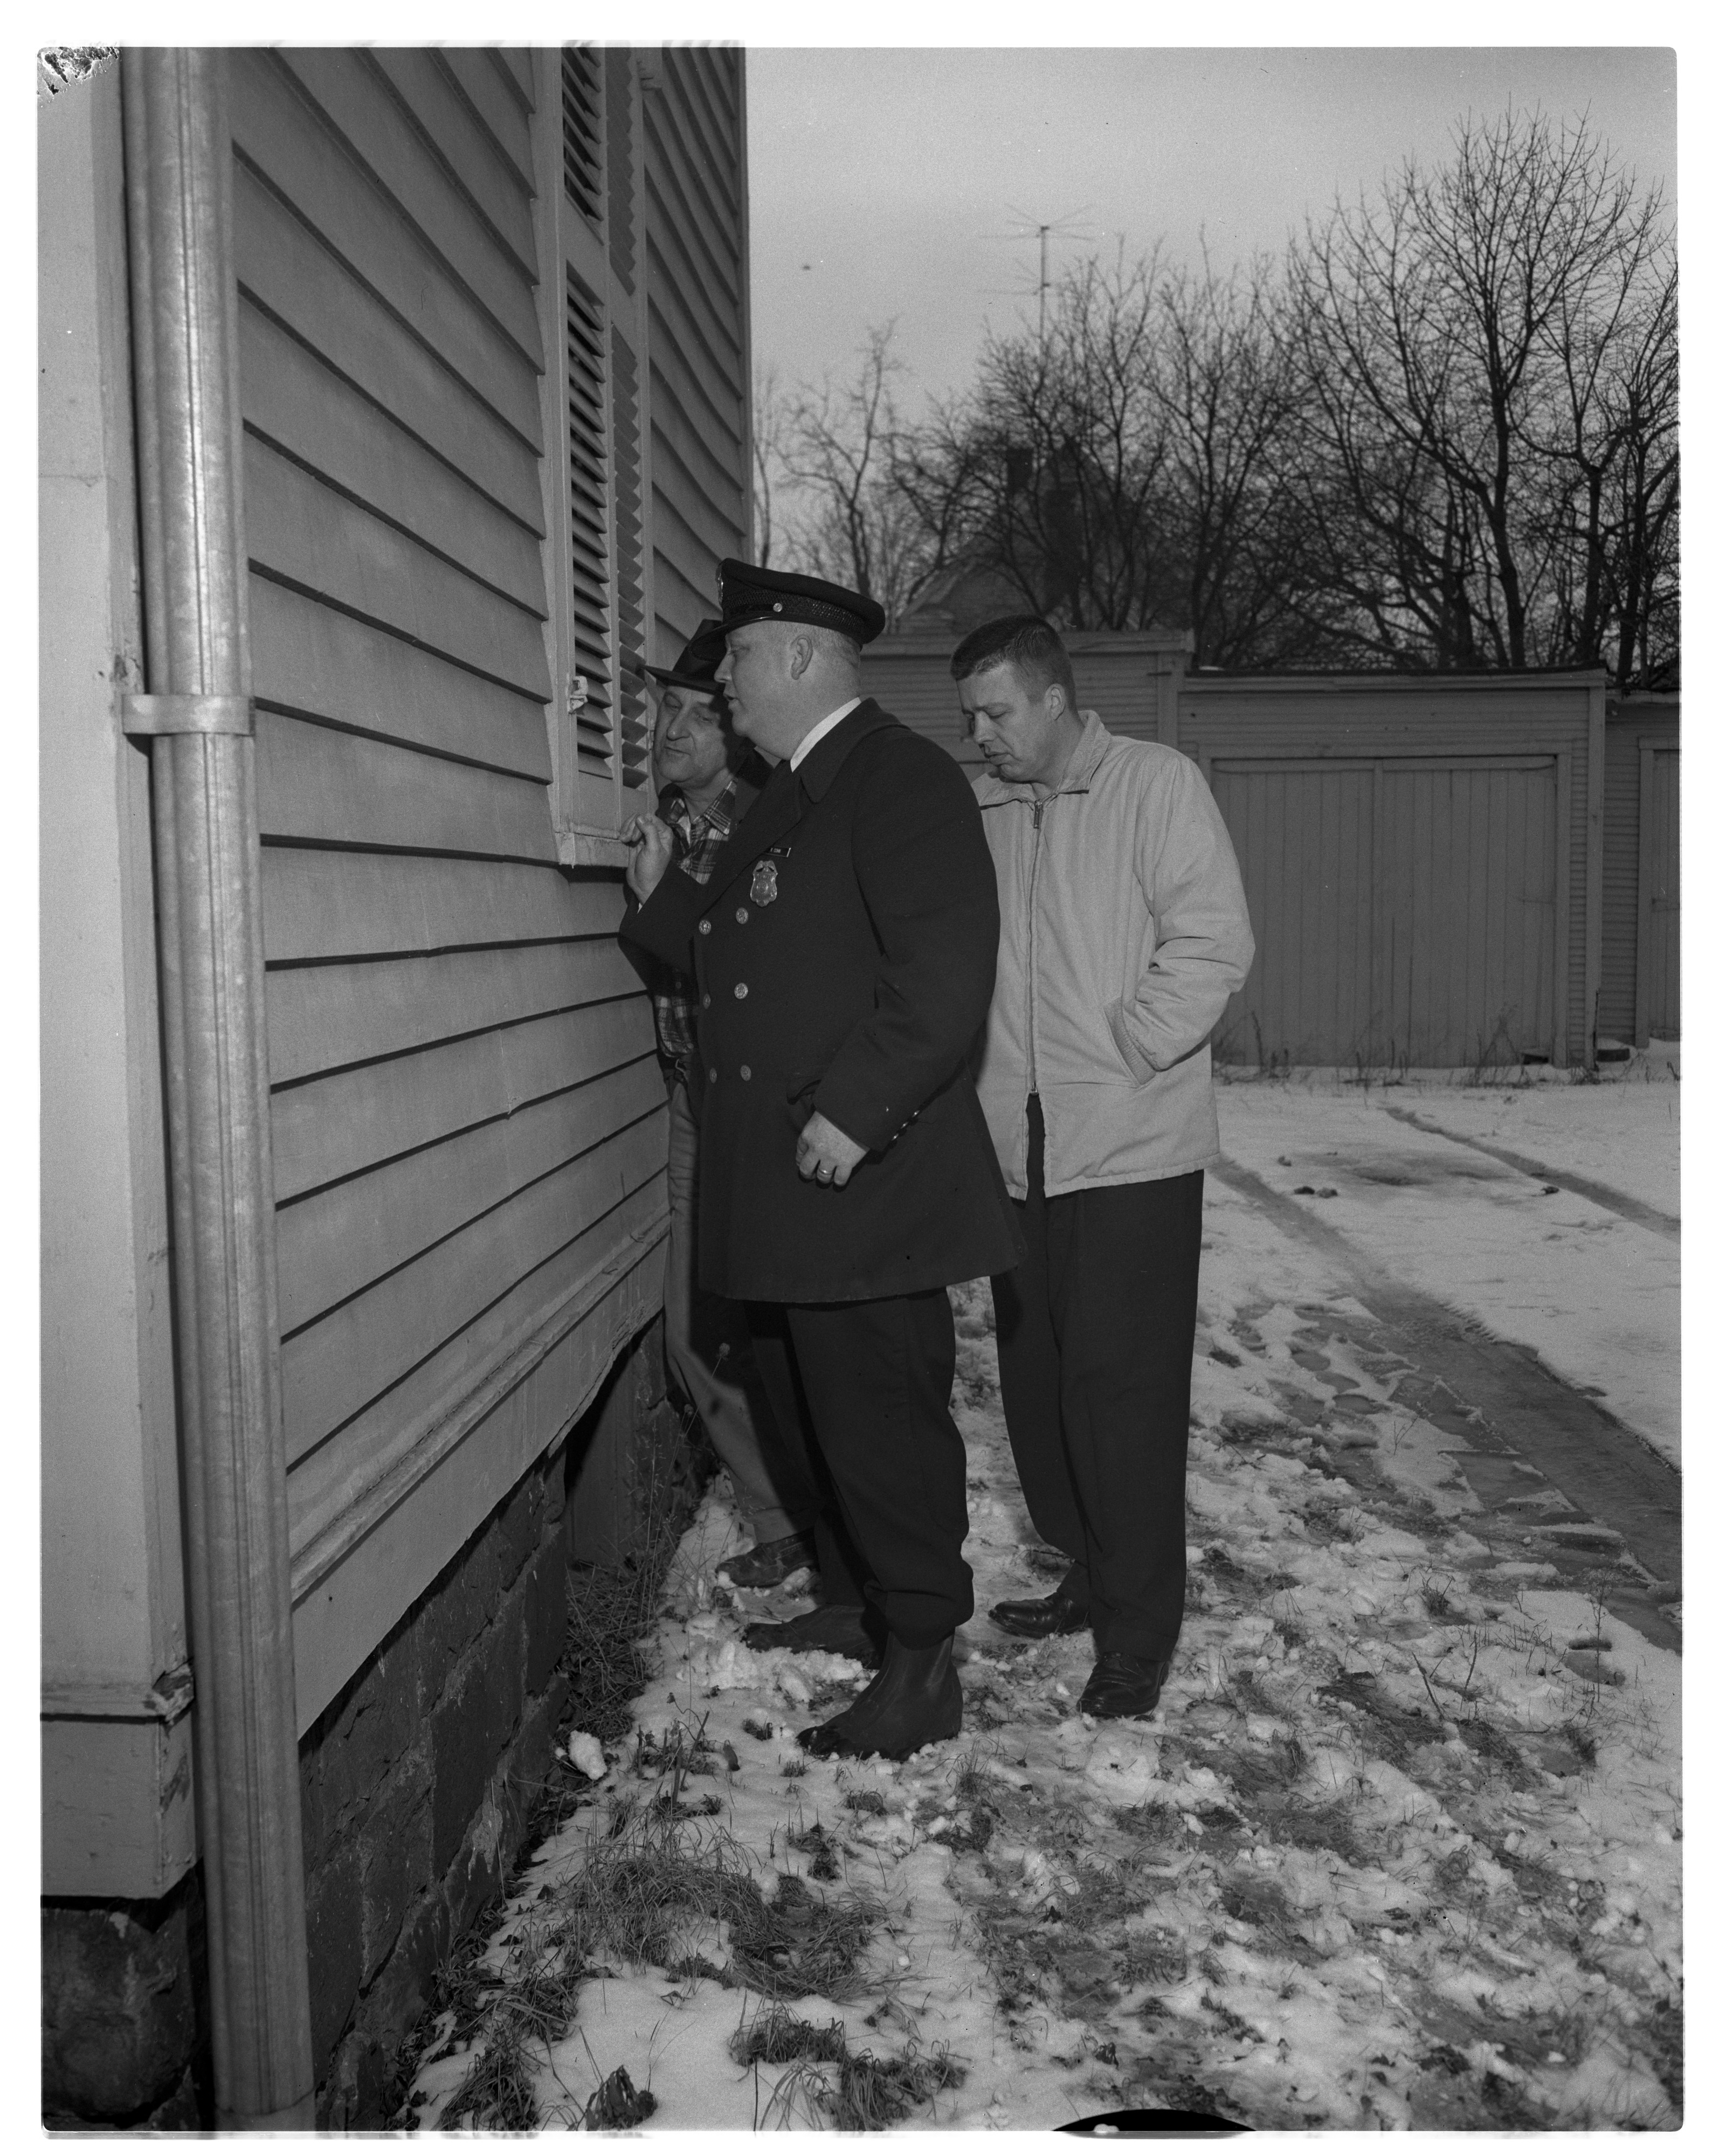 Ann Arbor Police Officers Talk To Recluse Andrew Rowe, February 1961 image